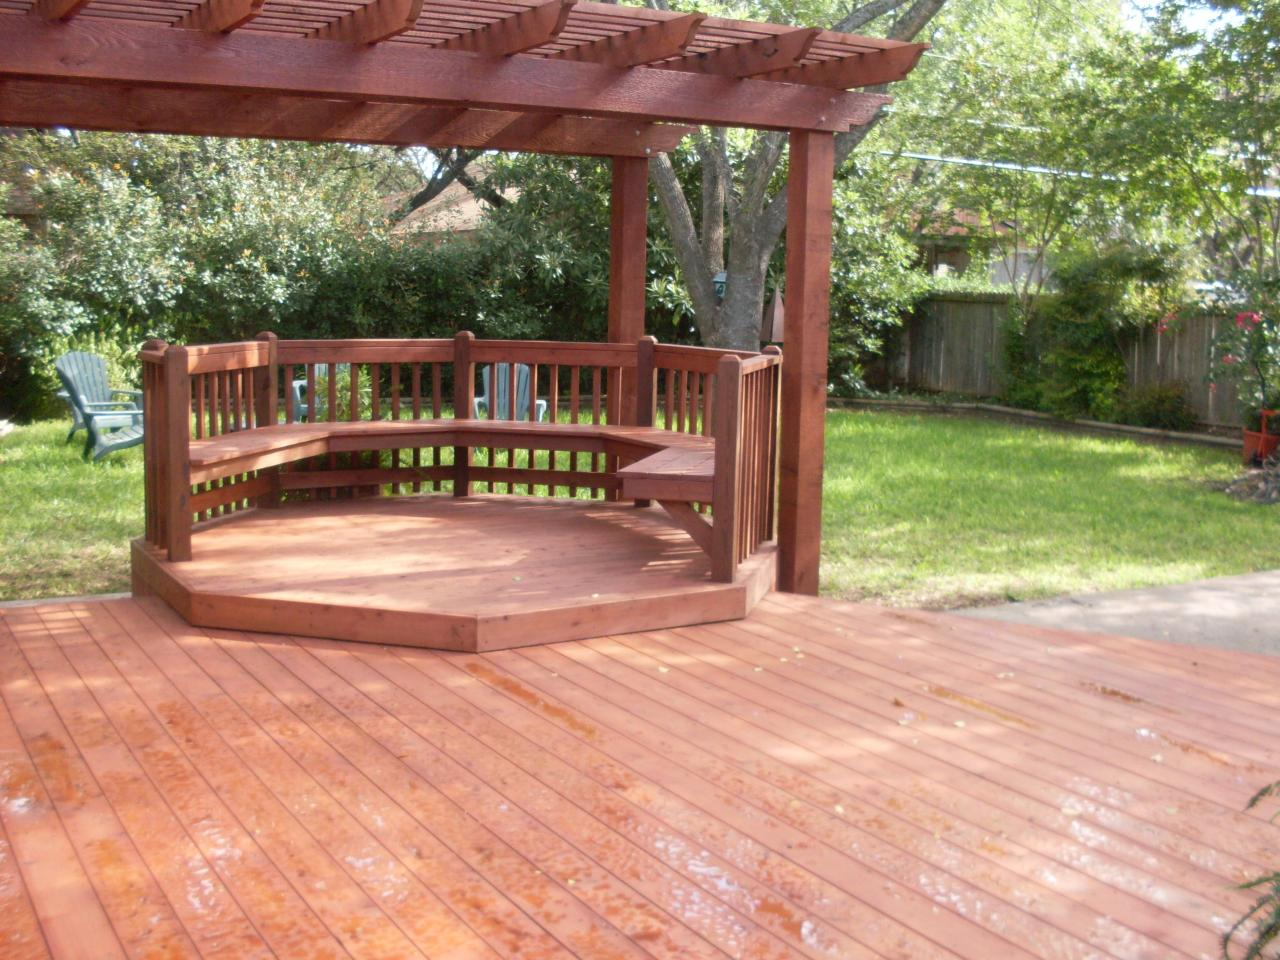 Cozy Backyard Deck Using Wooden Floor Tile also Charming Seat and Railing